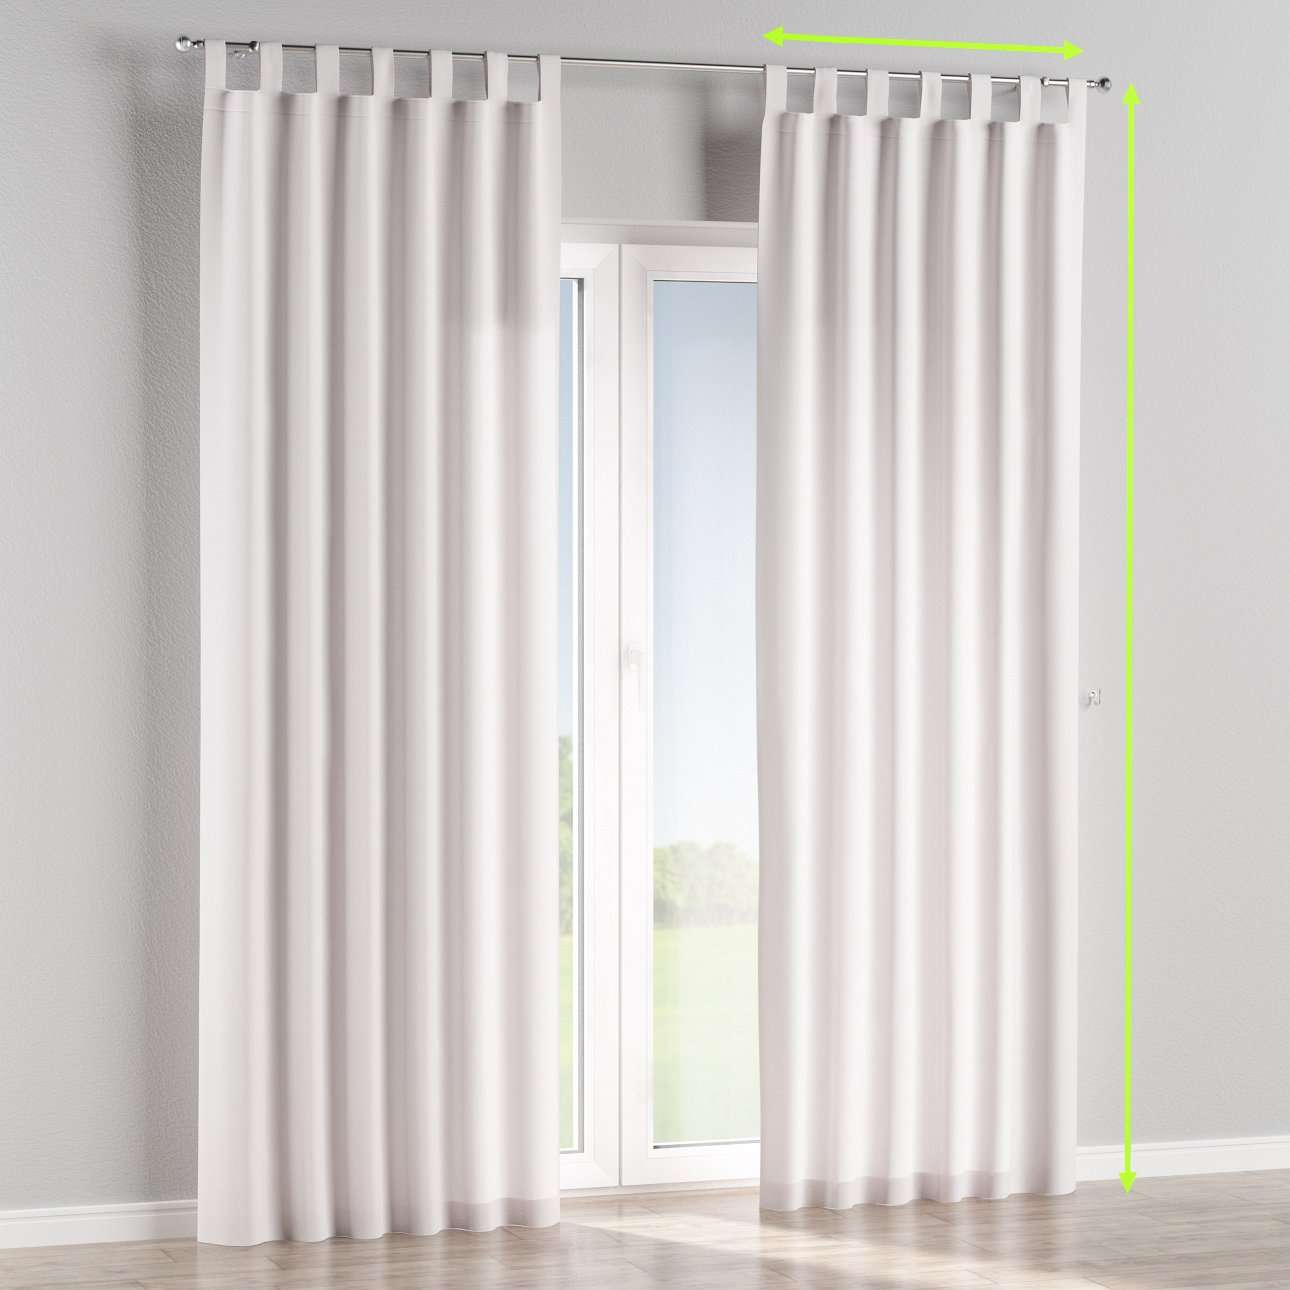 Tab top curtains in collection Cotton Panama, fabric: 702-34